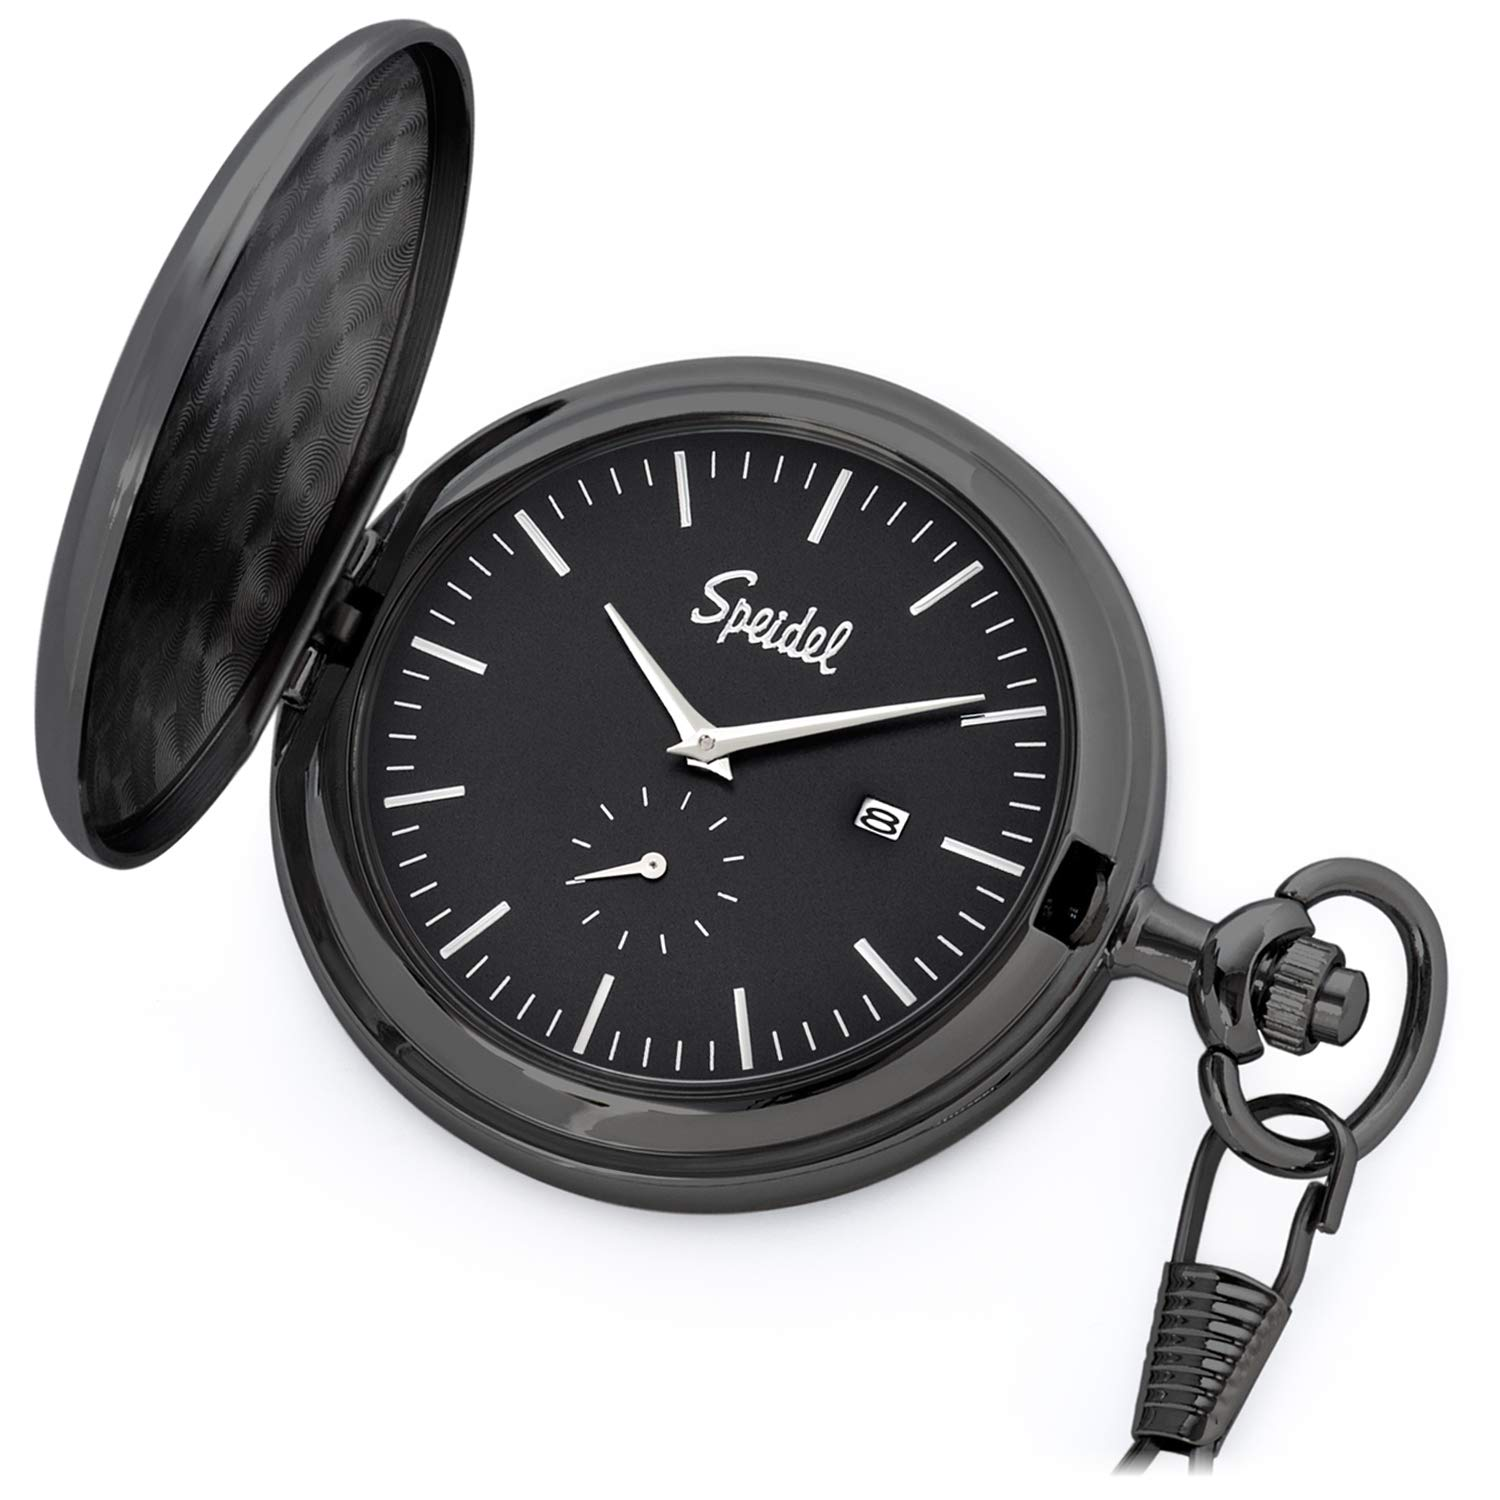 Speidel Classic Brushed Satin Black Engravable Pocket Watch with 14'' Chain, Black Dial, Date Window, and Seconds Sub-Dial by Speidel